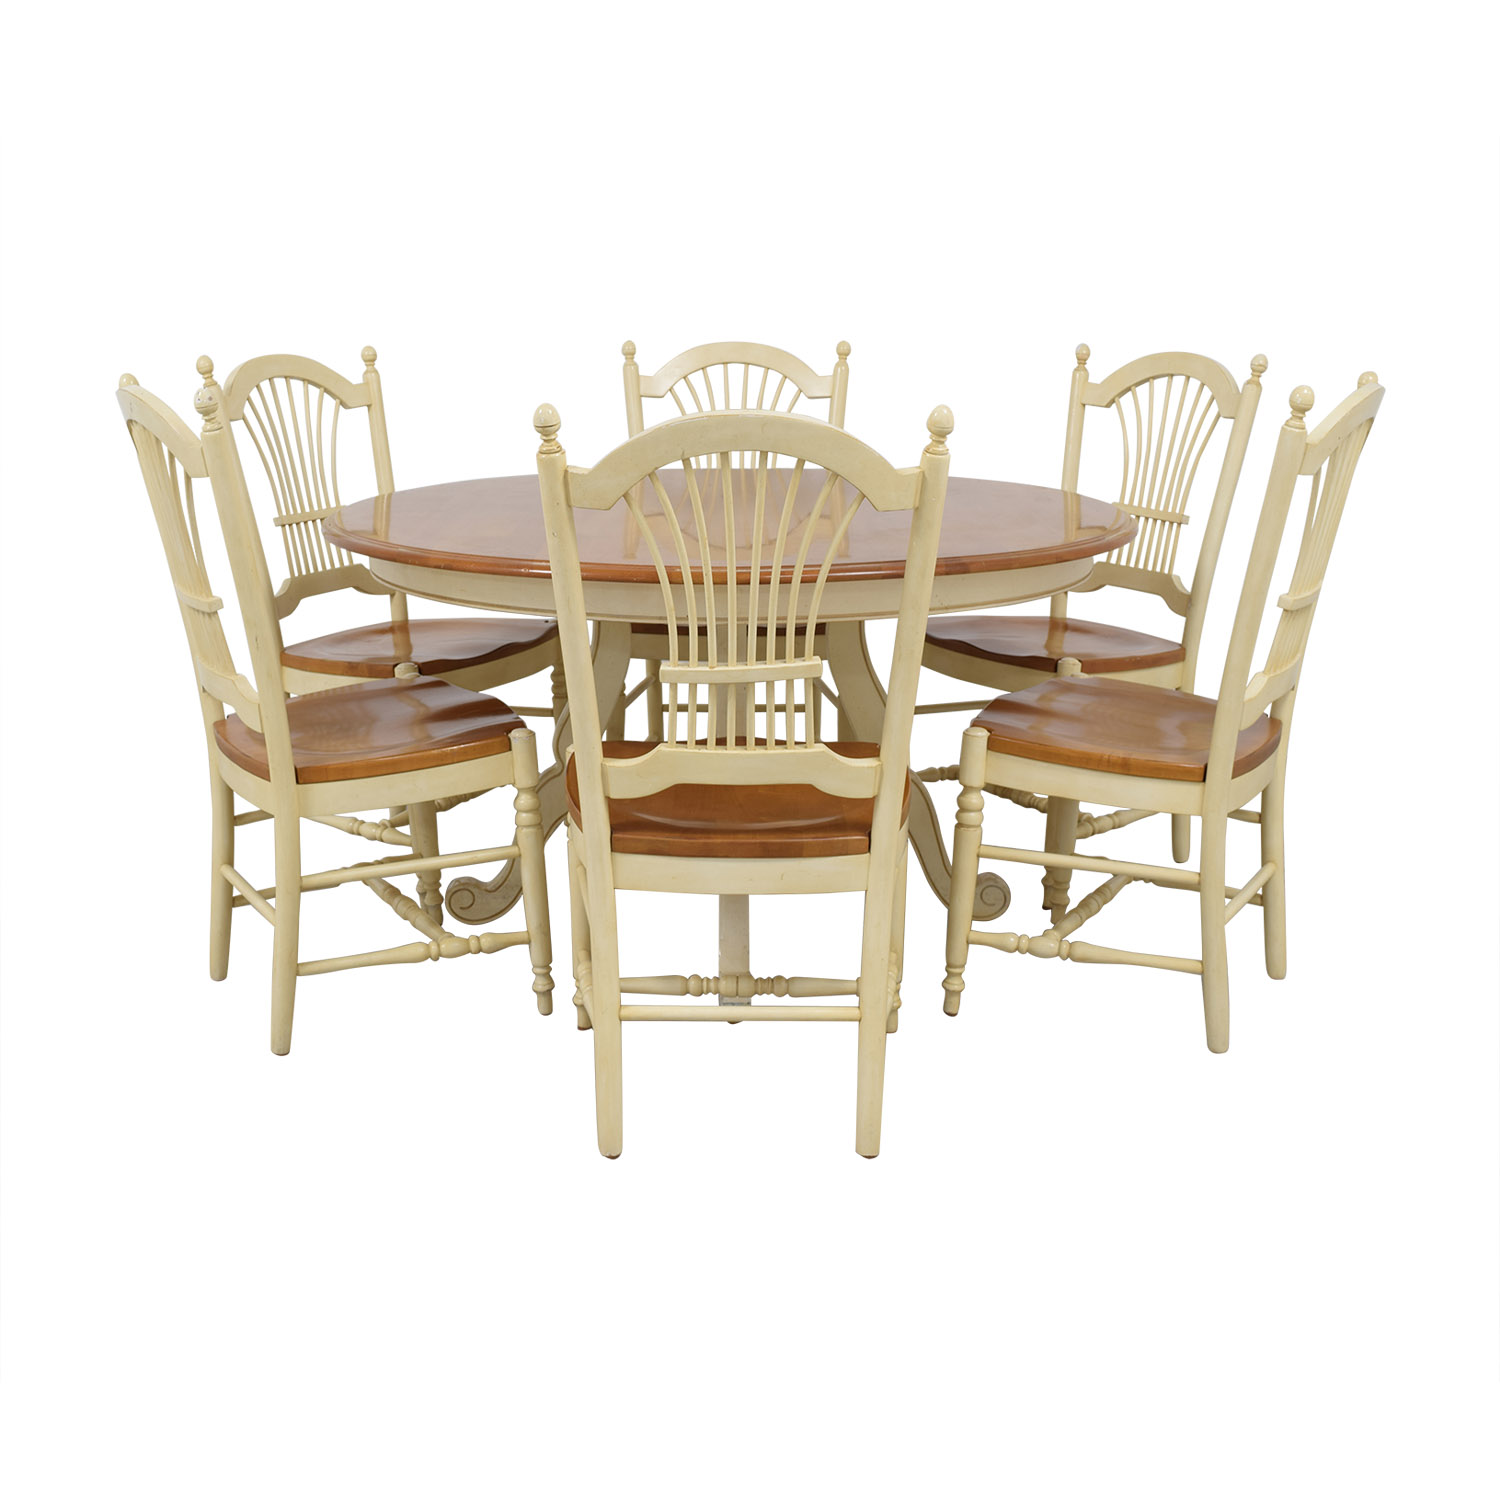 43 Off Ethan Allen Ethan Allen Country French Dining Set Tables